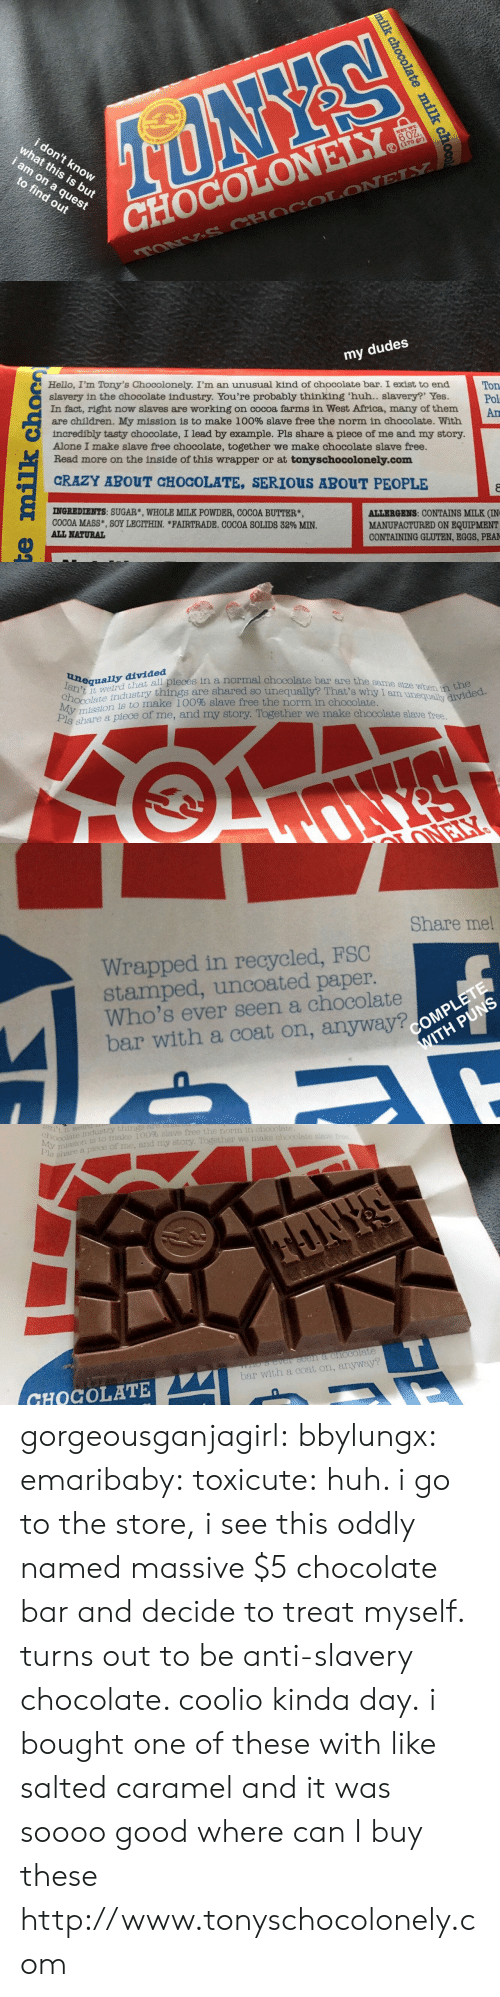 Coolio: 0  6 0Z  i don't kno  what this is but  i am on aq  to find out  CHOCOLONELY   my dudes  Hello, I'm Tony's Chocolonely. I'm an unusual kind of chocolate bar. I exist to end  slavery in the chocolate industry. You're probably thinking 'huh.. slavery?' Yes.  In fact, right now slaves are working on cocoa farms in West Africa, many of them  are children. My mission is to make 100% slave free the norm in chocolate. With  incredibly tasty chocolate, I lead by example. Pls share a piece of me and my story.  Alone I make slave free chocolate, together we make chocolate slave free.  Read more on the inside of this wrapper or at tonyschocolonely.com  Ton  Pol  Am  CRAZY ABOUT CHOCOLATE, SERIOUS ABOUT PEOPLE  INGREDIENTS: SUGAR*, WHOLE MILK POWDER, COCOA BUTTER*  COCOA MASS, SOY LECITHIN. *FAIRTRADE. COCOA SOLIDS 32% MIN.  ALL NATURAL  ALLERGENS: CONTAINS MILK (IN  MANUFACTURED ON EQUIPMENT  CONTAINING GLUTEN, EGGS, PEA   lsntequally divided  ird that  e stry things are shared so unequally? That's why I am unequally divided.  divi all pleces in a normal chocolate bar are the same  stze when in the  ossioni to make 10096 slave free the norm in chocolate.  share a piece of  nd my story   Share me!  Wrapped in recycled, FSC  stamped, uncoated paper.  Who's ever seen a chocolate  bar with a coat on, anyway?   isn't.  hocolatemati omake 100% slave free the norm in chocolate  welry things at  ustry  mission is to Tie  shre a plece of  piece of me, and my story. Together we make chocolste  slave fro  CHOCOLATE  bar with a coat on, anyway? gorgeousganjagirl:  bbylungx:  emaribaby:   toxicute: huh. i go to the store, i see this oddly named massive $5 chocolate bar and decide to treat myself. turns out to be anti-slavery chocolate. coolio kinda day. i bought one of these with like salted caramel and it was soooo good   where can I buy these  http://www.tonyschocolonely.com